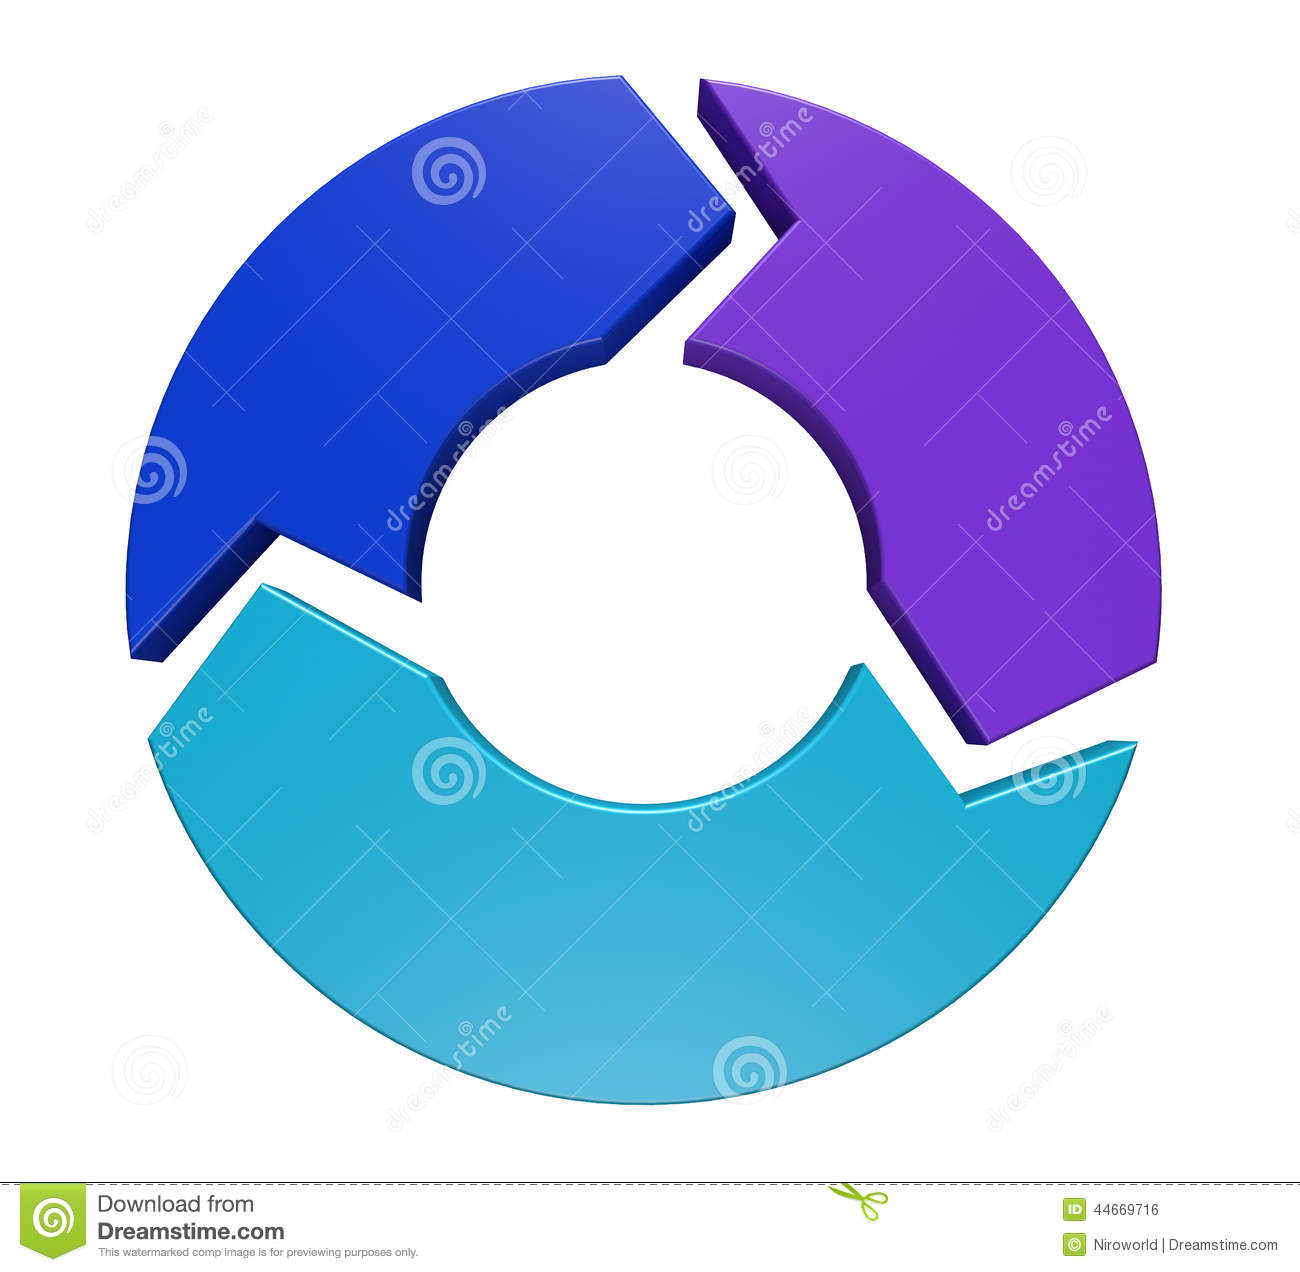 Process cycling arrow by arrow royalty free stock images image - Business Arrows Cycle Chart Diagram Business Plan Cycle Diagram Royalty Free Stock Image